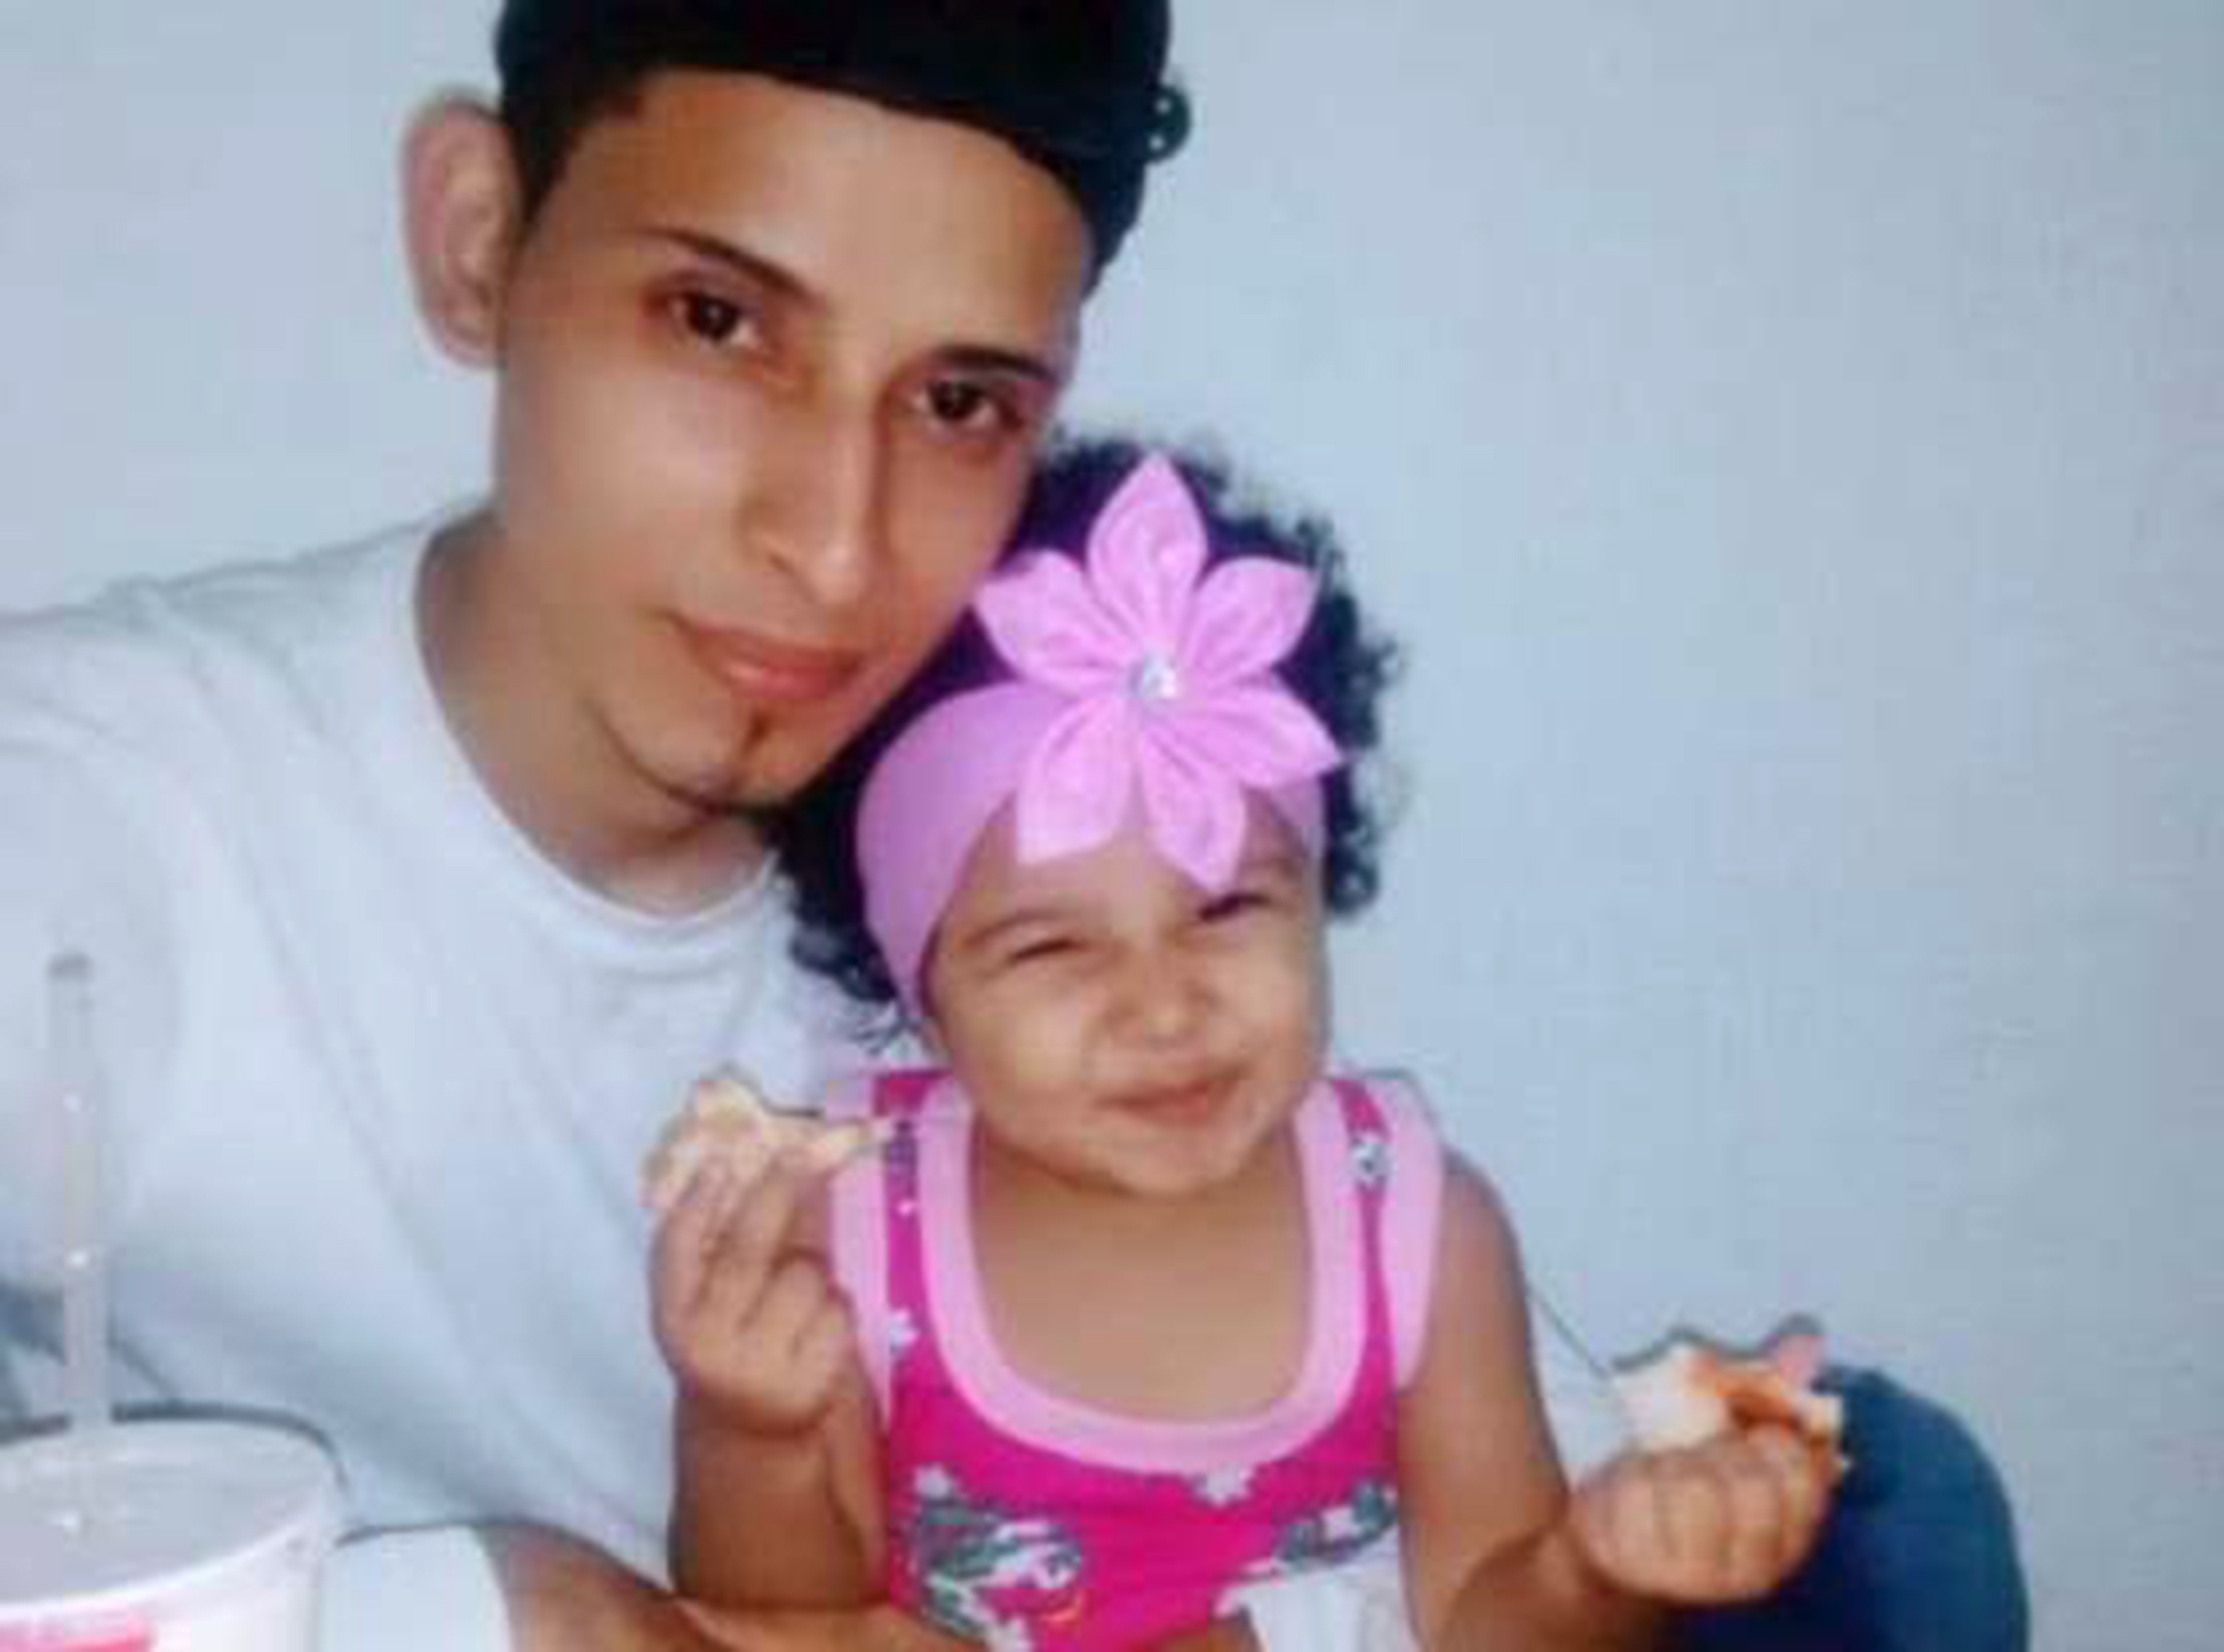 Dad & Toddler Who Drowned Trying to Enter U.S. Left a Country Where He Made Only $350/Month: 'They Wanted a Better Future'